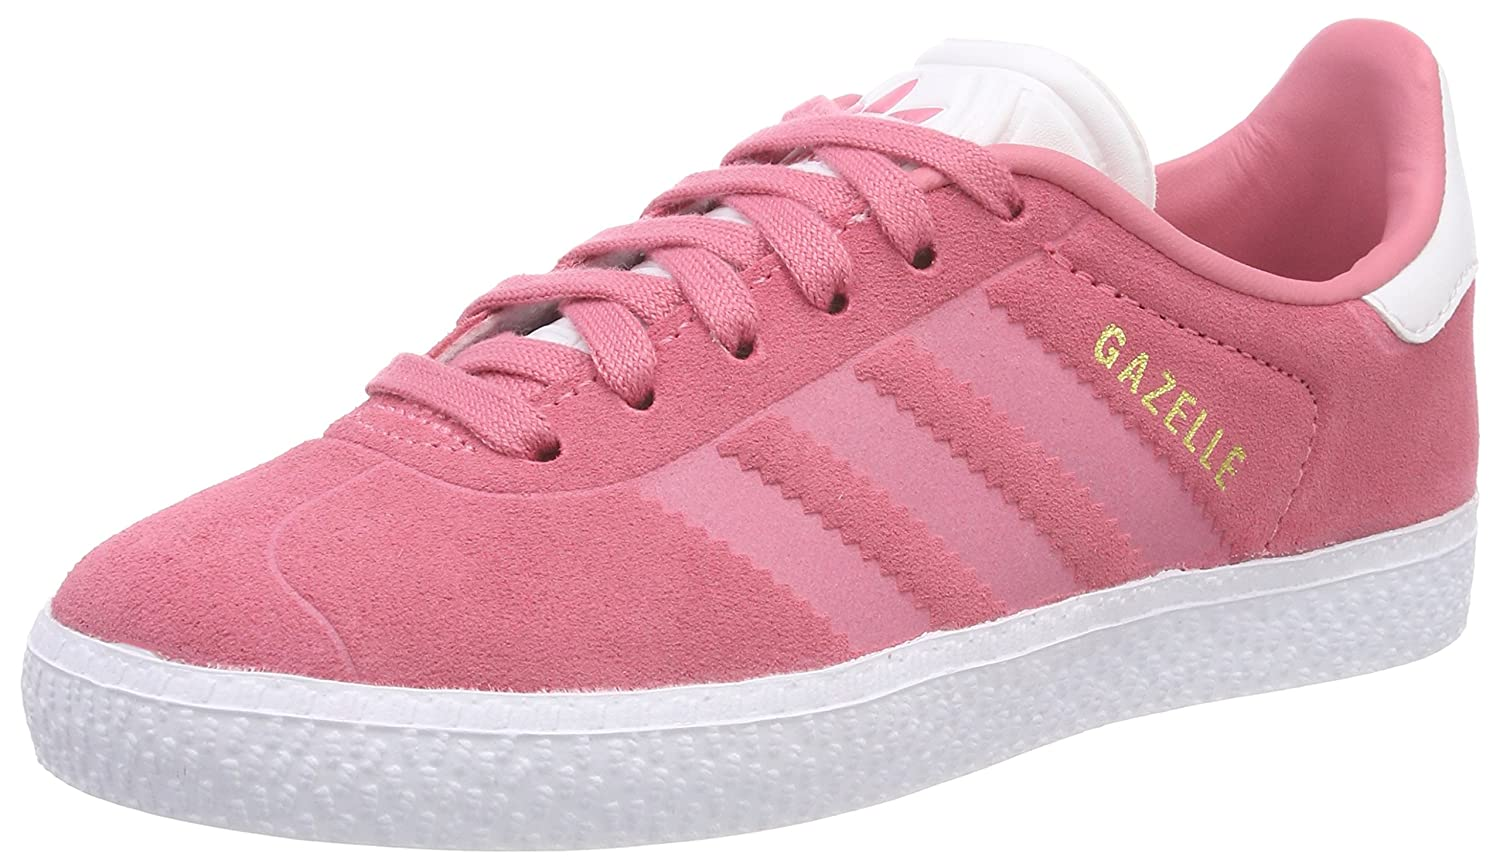 competitive price 7bd55 50d0d Amazon.com   adidas Originals Gazelle J Chalk Pink Suede Youth Trainers  Shoes   Fashion Sneakers